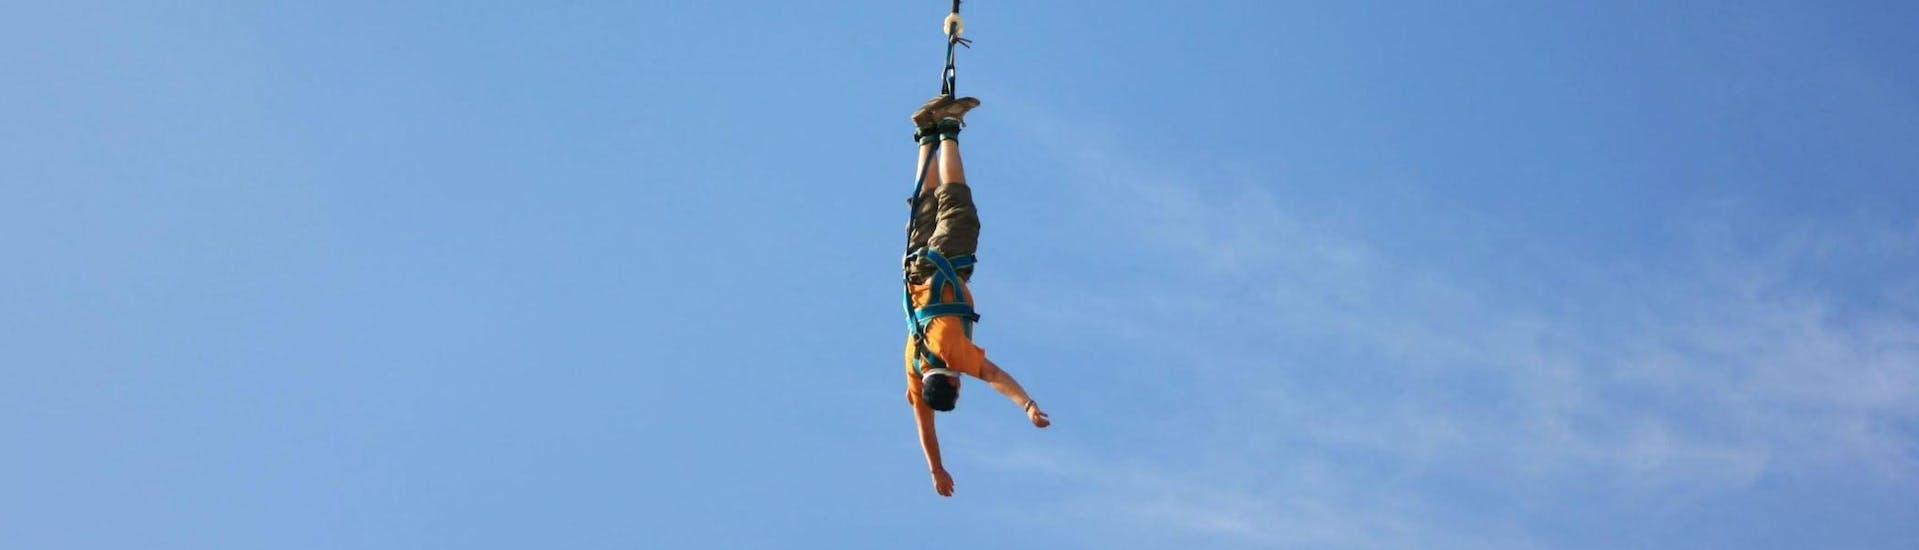 A person is participating to the Bungee Jumping from Viaduc de Coquilleau (52m) activity with Elastic Crocodil Bungee.